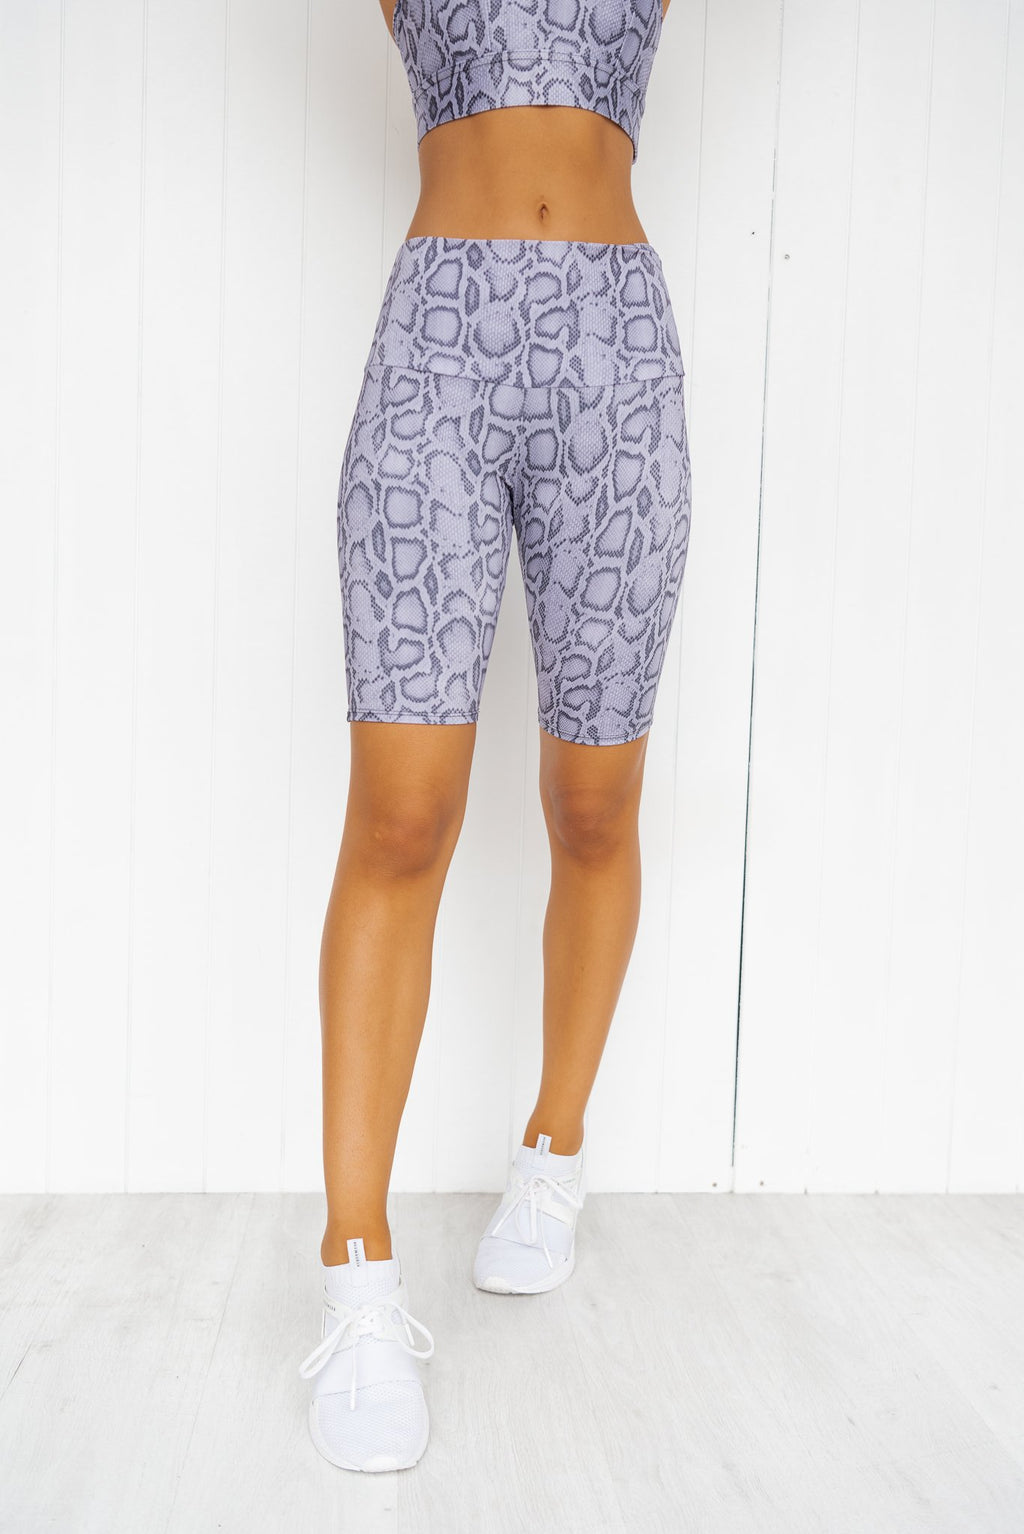 High Rise Bike Short - Lavender Cobra - PURE DASH